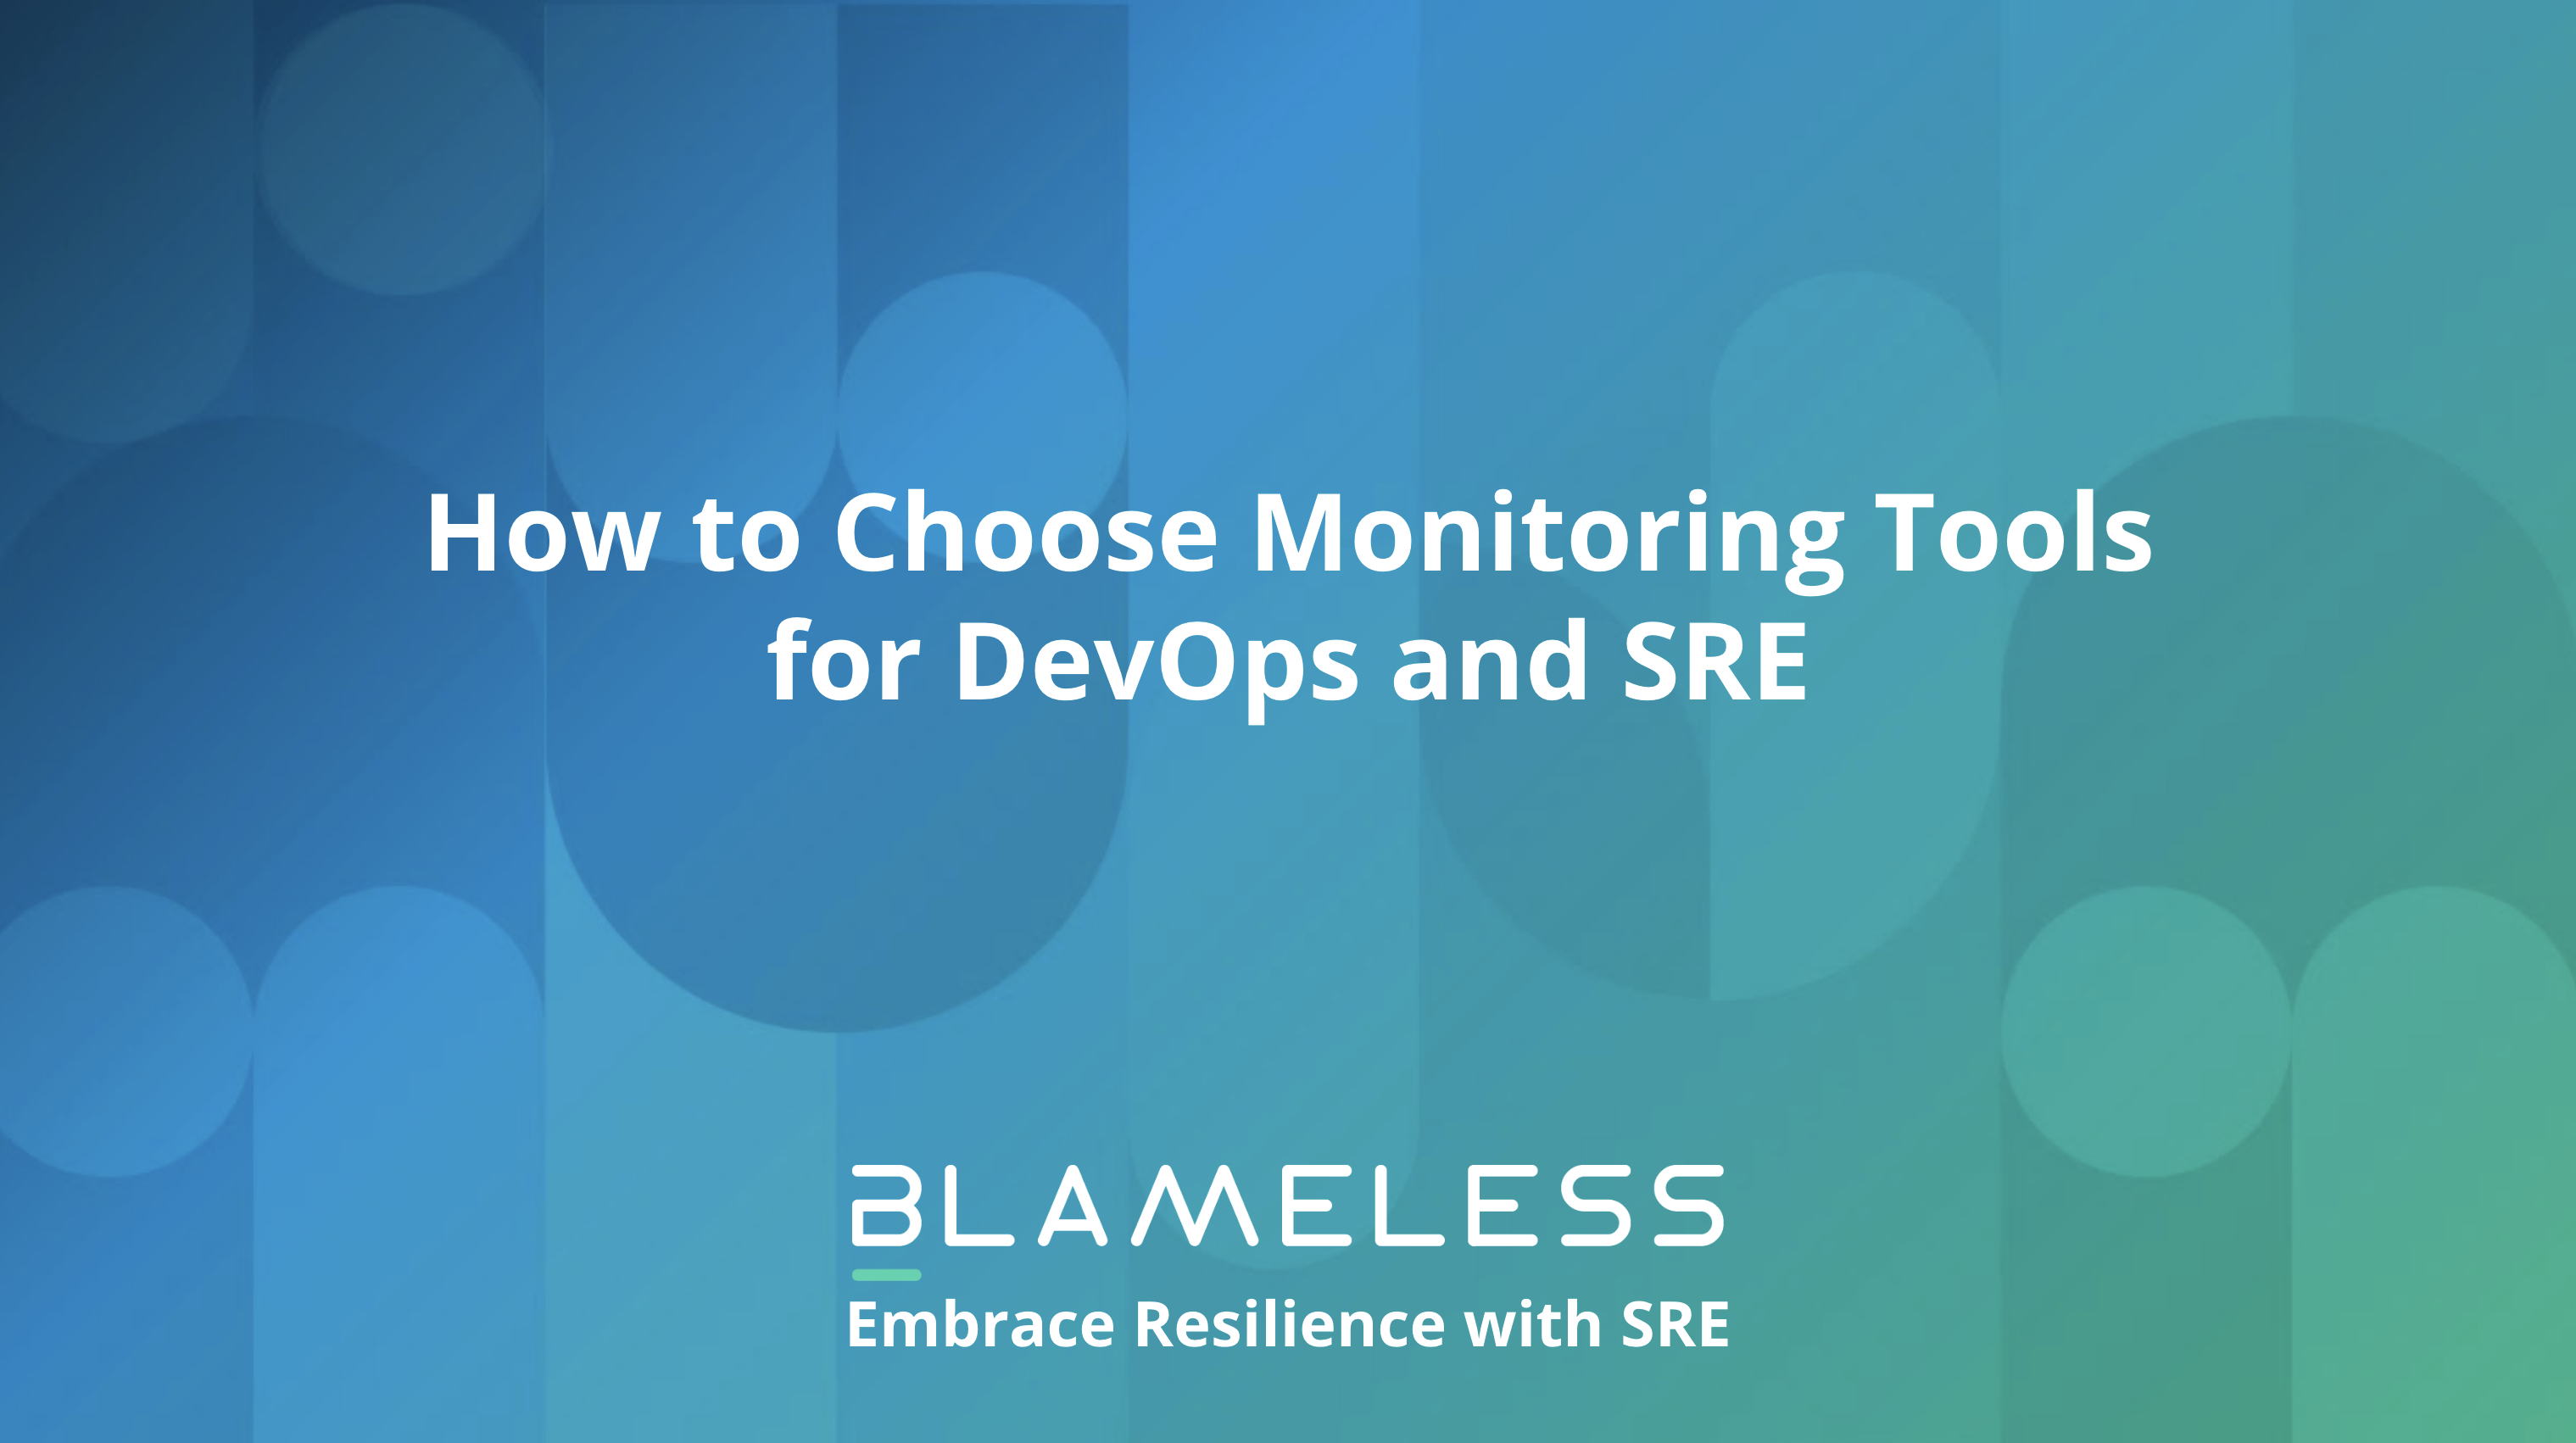 How to Choose Monitoring Tools for DevOps and SRE